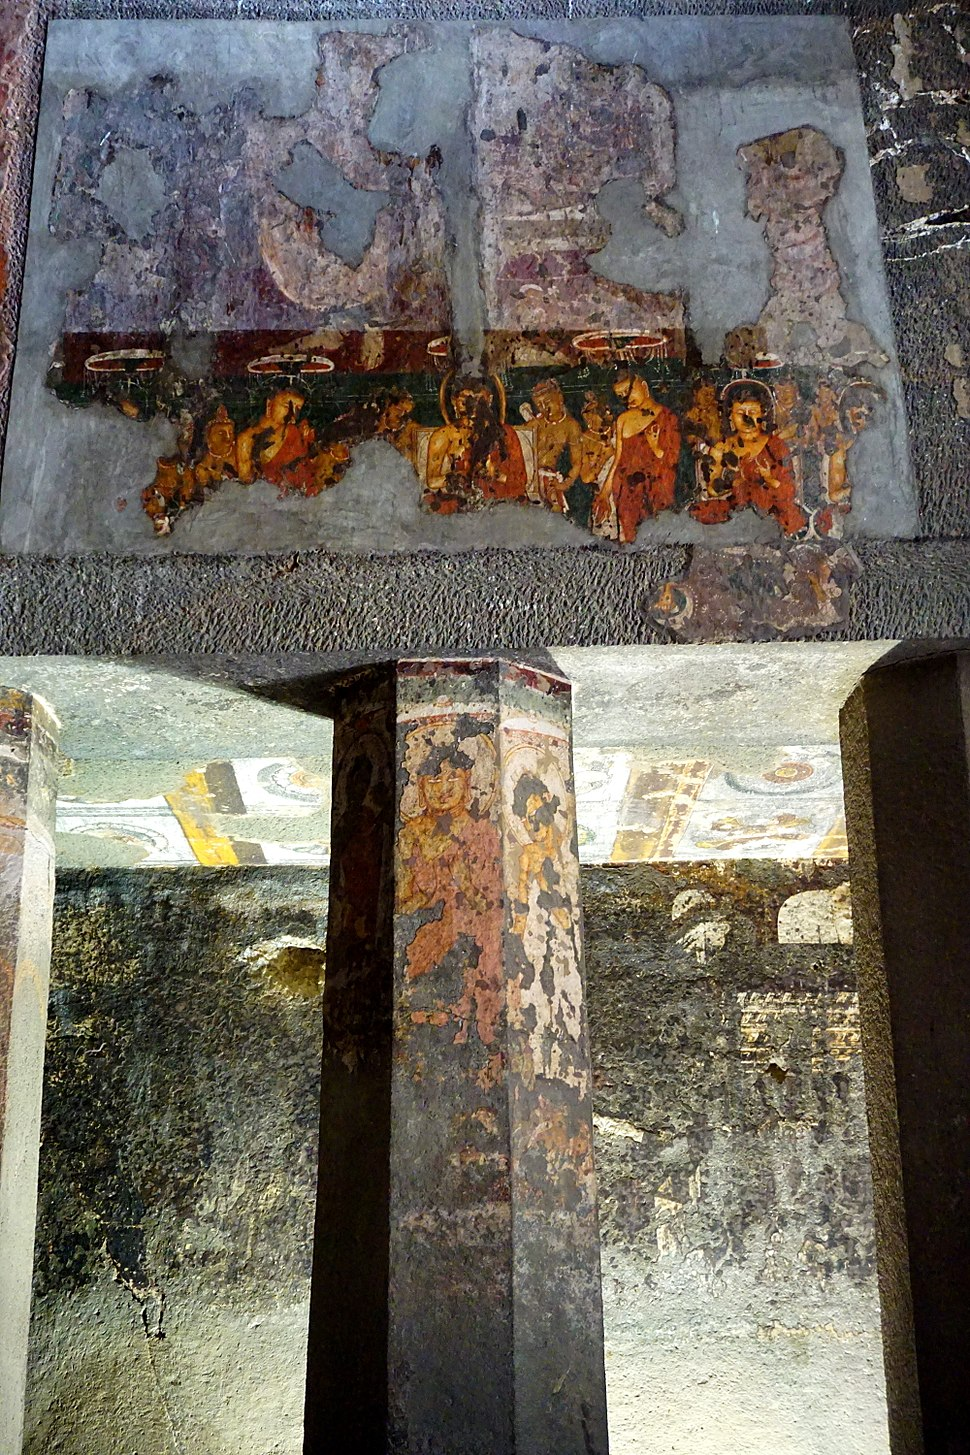 Cave 9, Paintings on and over pillars right side of the cave